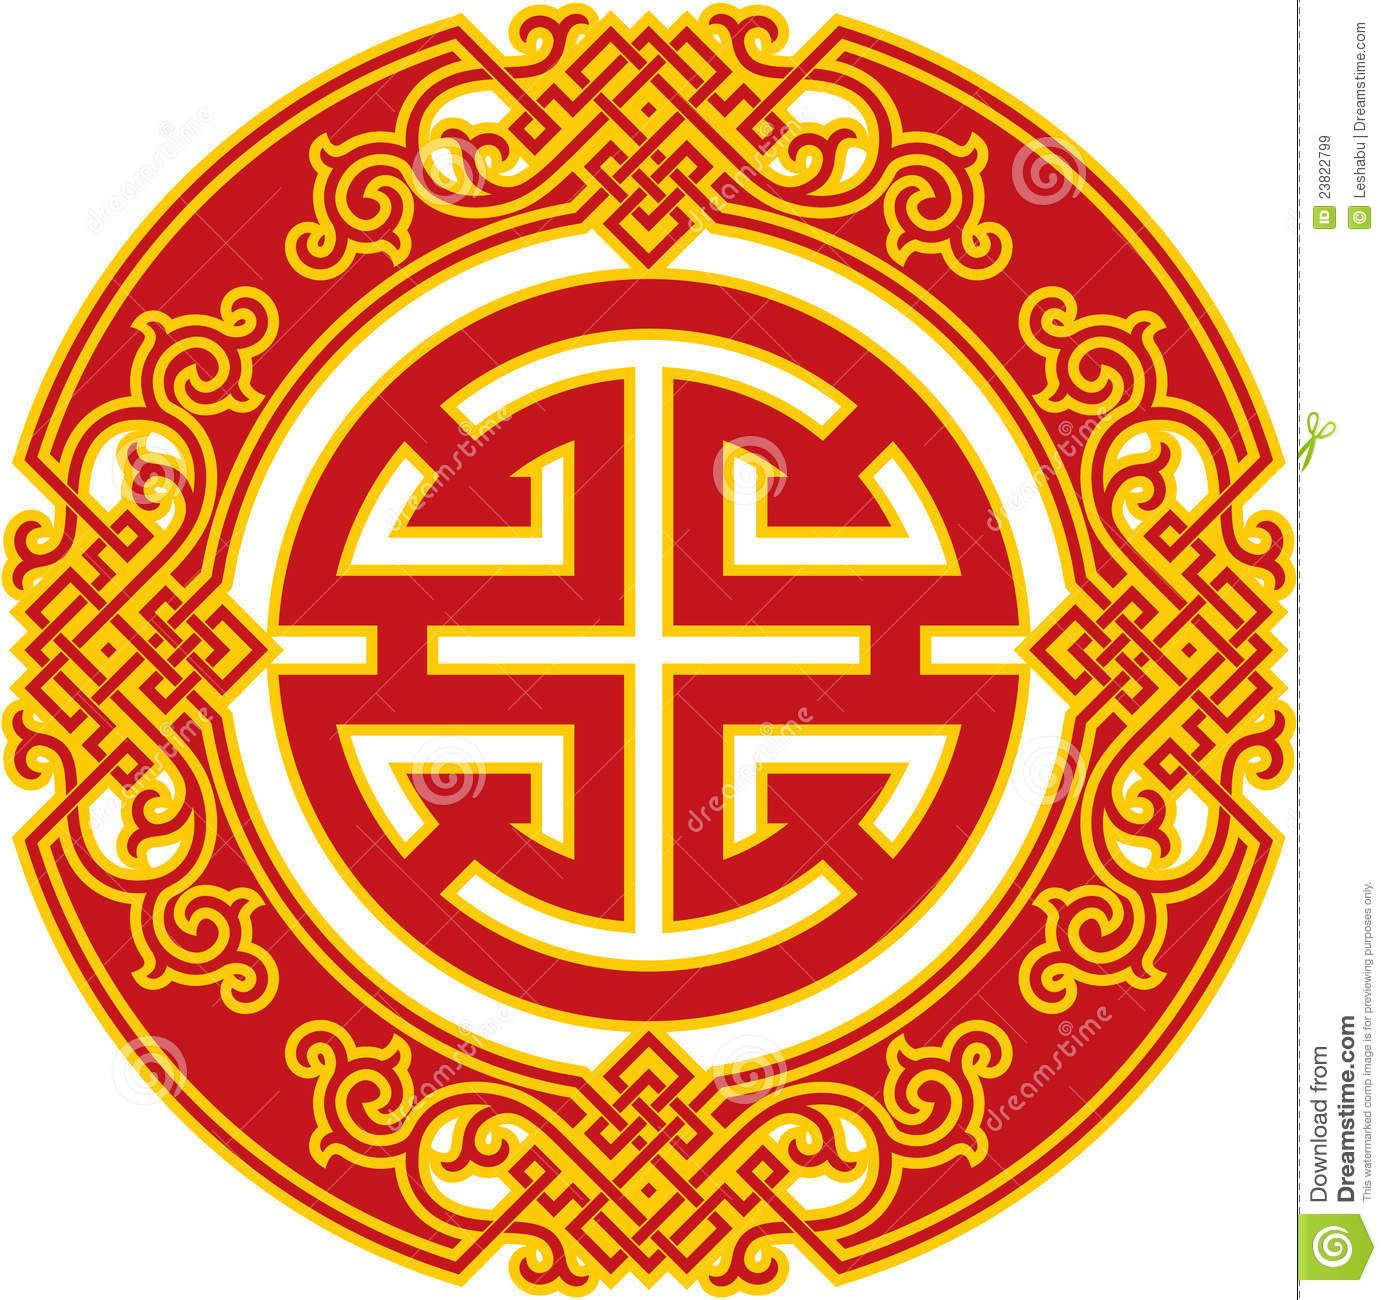 Ancient Asian Fighting Symbols Yahoo Search Results Yahoo Image